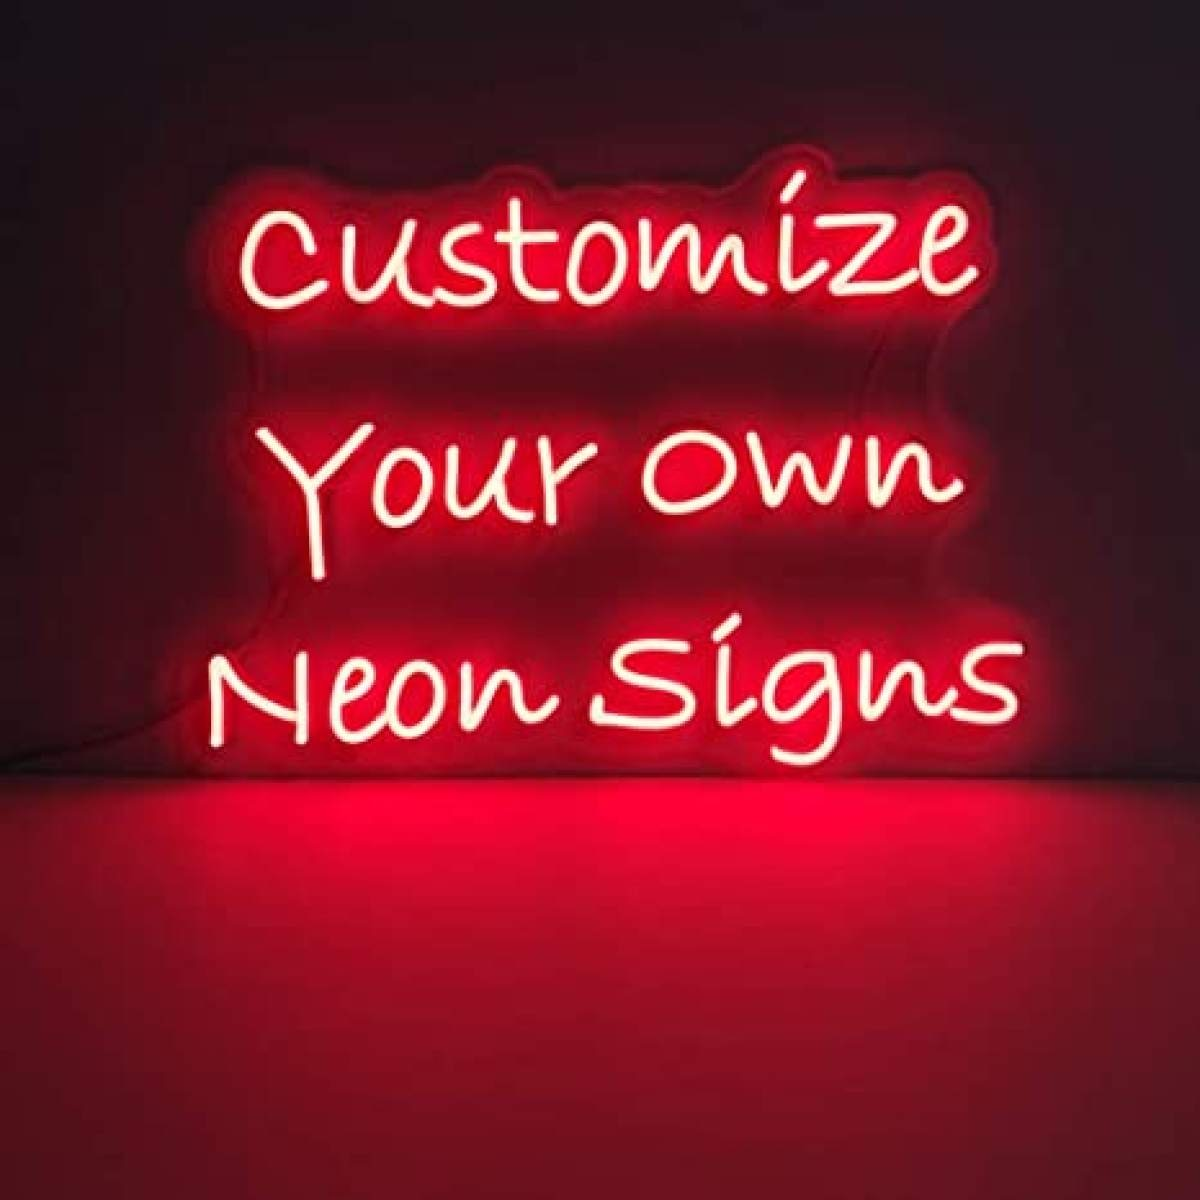 Queen Sense Live Nudes Beauty Back Butt Sexy Girl Neon Sign Custom Logo Led Neon Sign Wedding Party Birthday Led Sign For Room enlarge